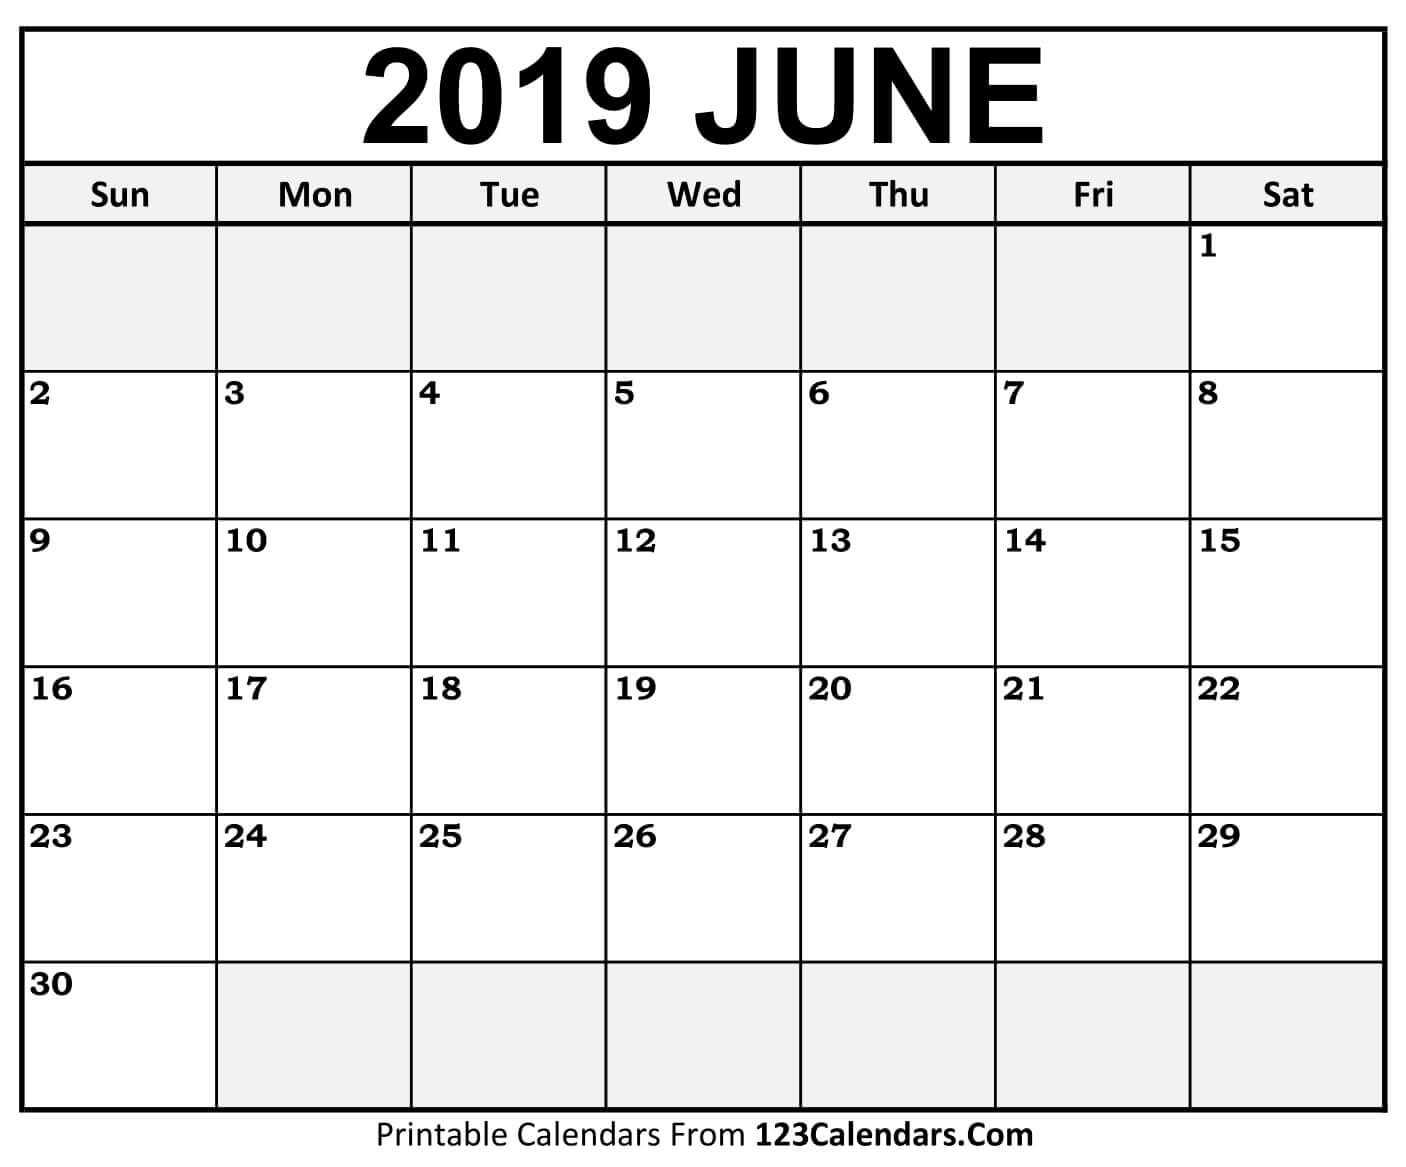 Free Printable 2019 Monthly Calendar with Holidays Free Printable 2019 Monthly Calendar with Holidays Word